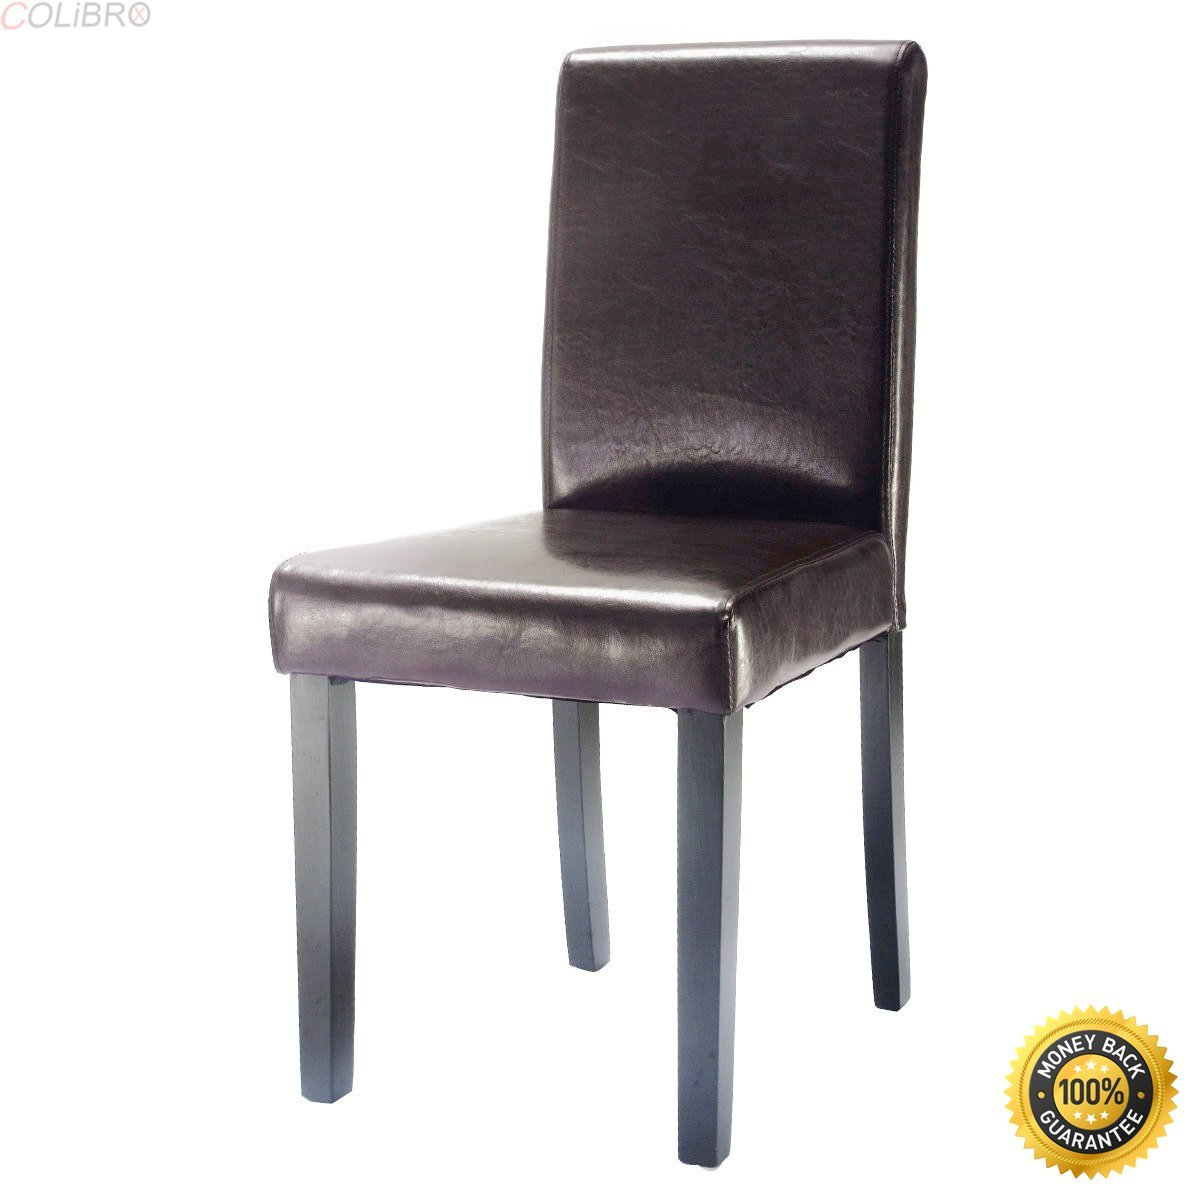 Dining Room Chairs Cheap Prices: Buy LSSBOUGHT Vintage Dining Chairs With PU Leather, Set